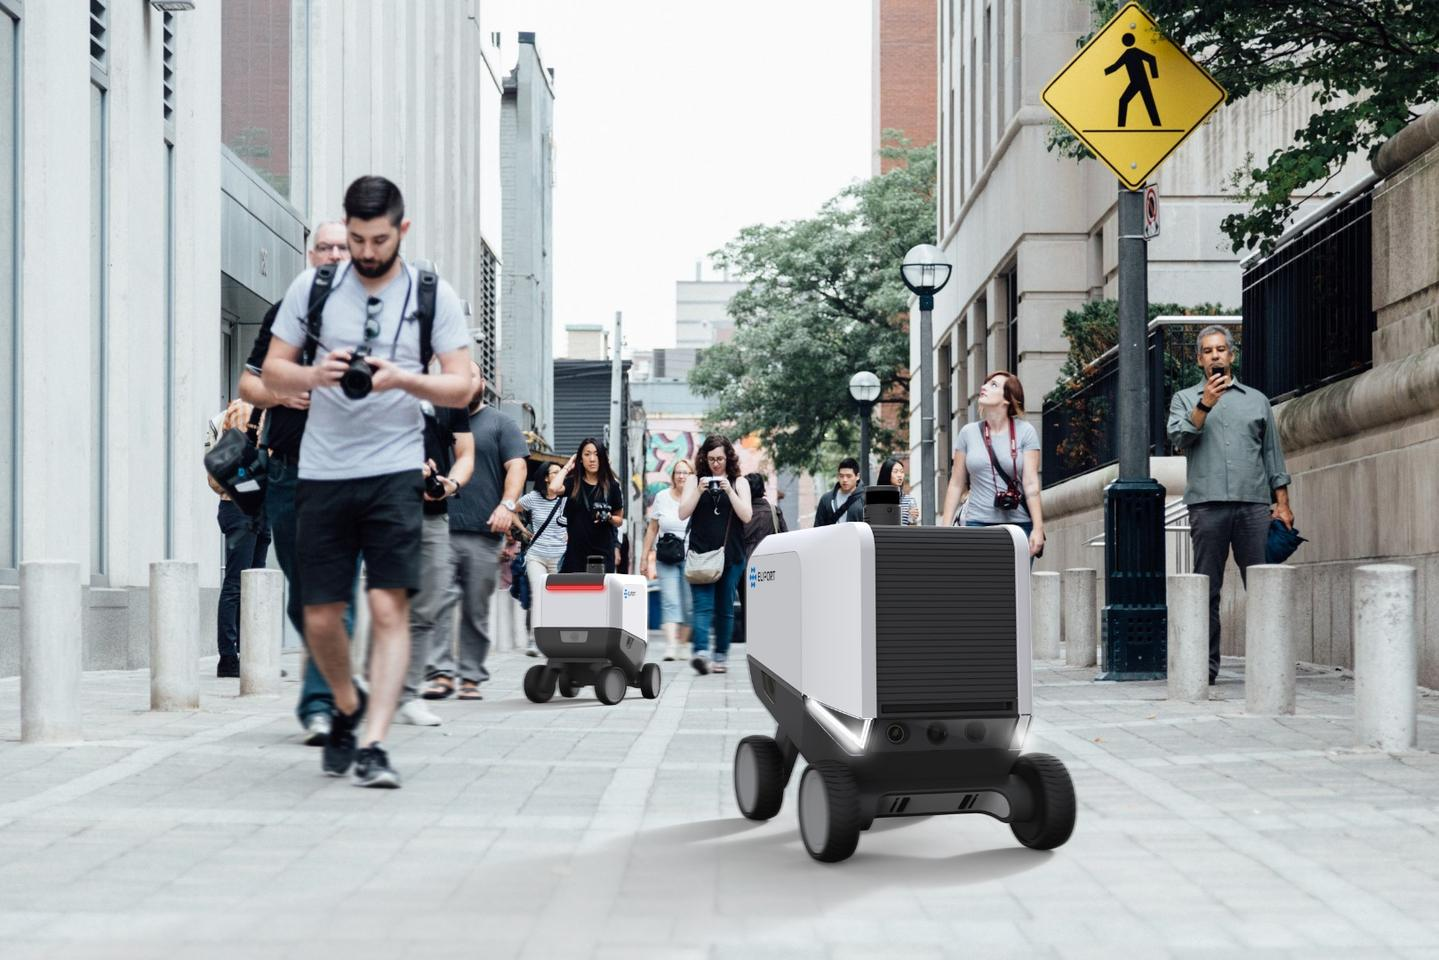 Plans call for Eliport robots to travel on sidewalks, amongst pedestrians